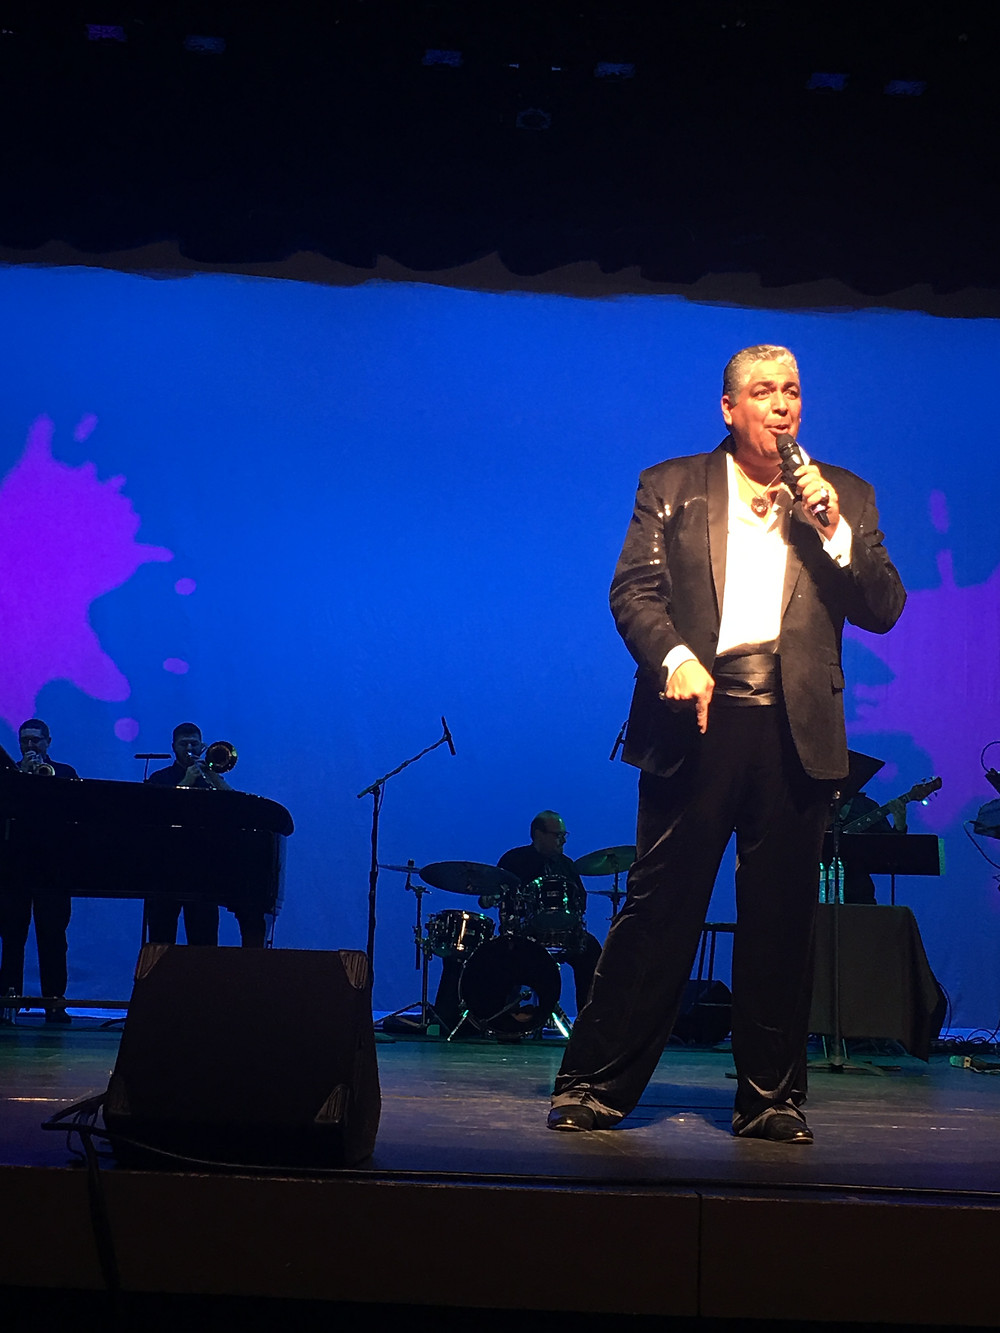 Singer Tony Arias, in his Las Vegas show, delivers humor with panache, and what makes it compelling is his musical talent.